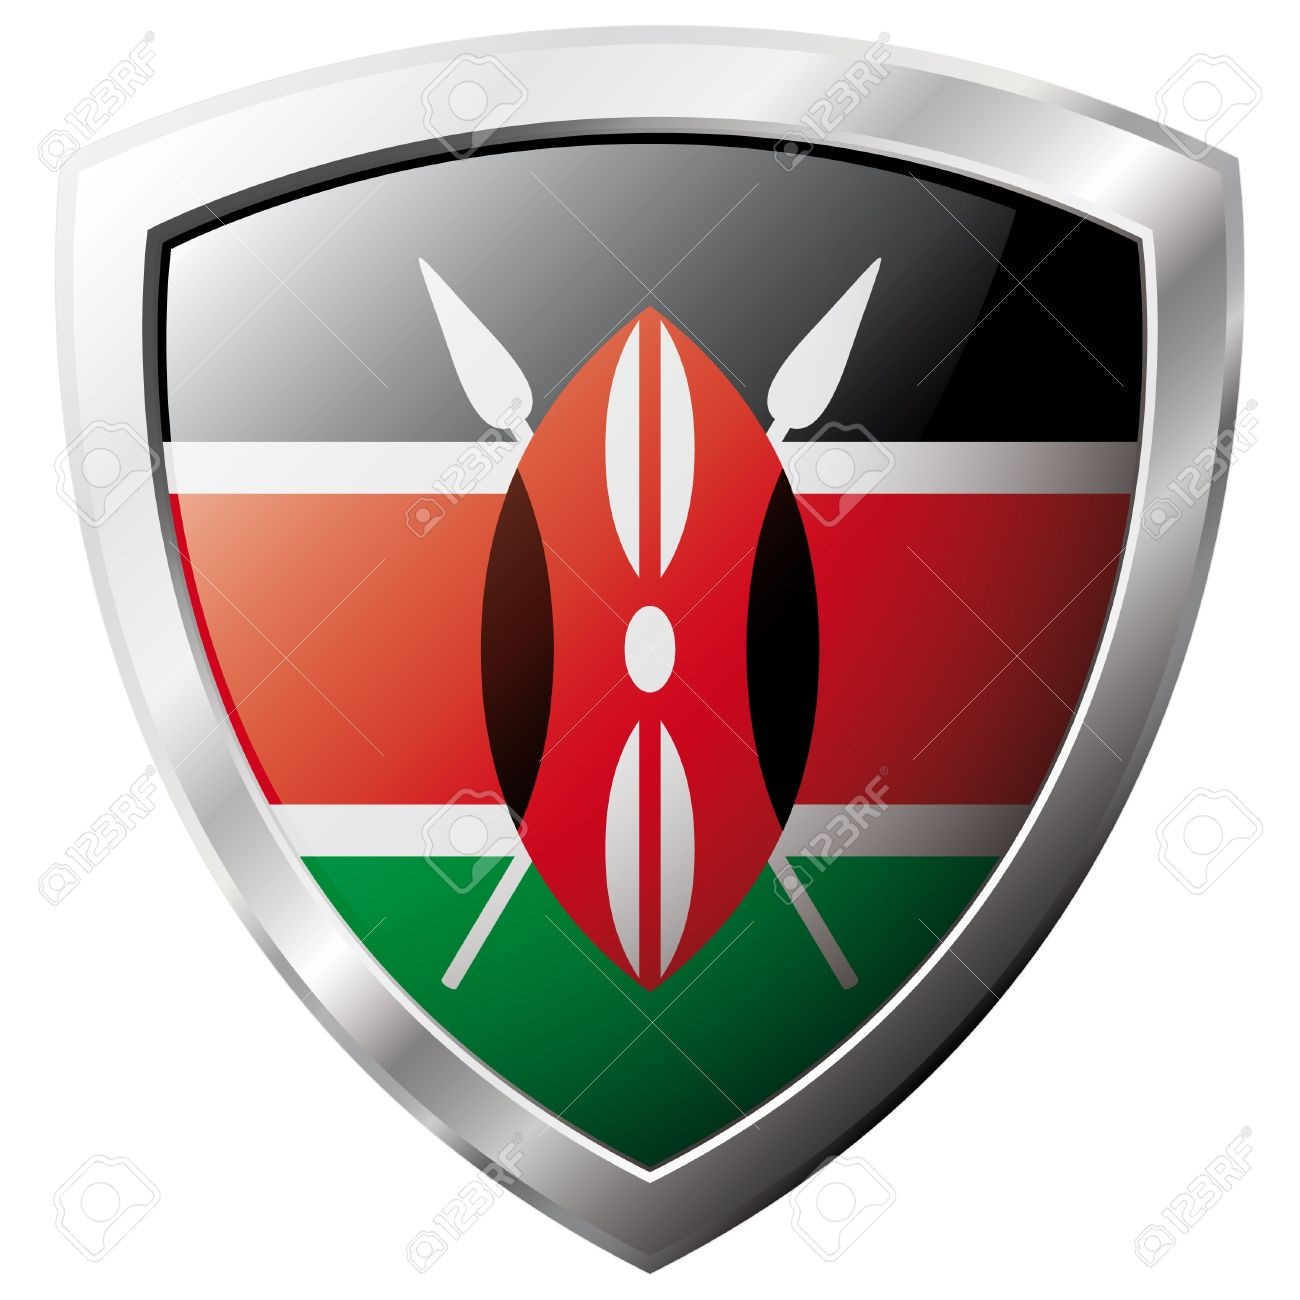 Kenya flag on metal shiny shield vector illustration. Collection of flags on shield against white background. Abstract isolated object. Stock Vector - 6906210